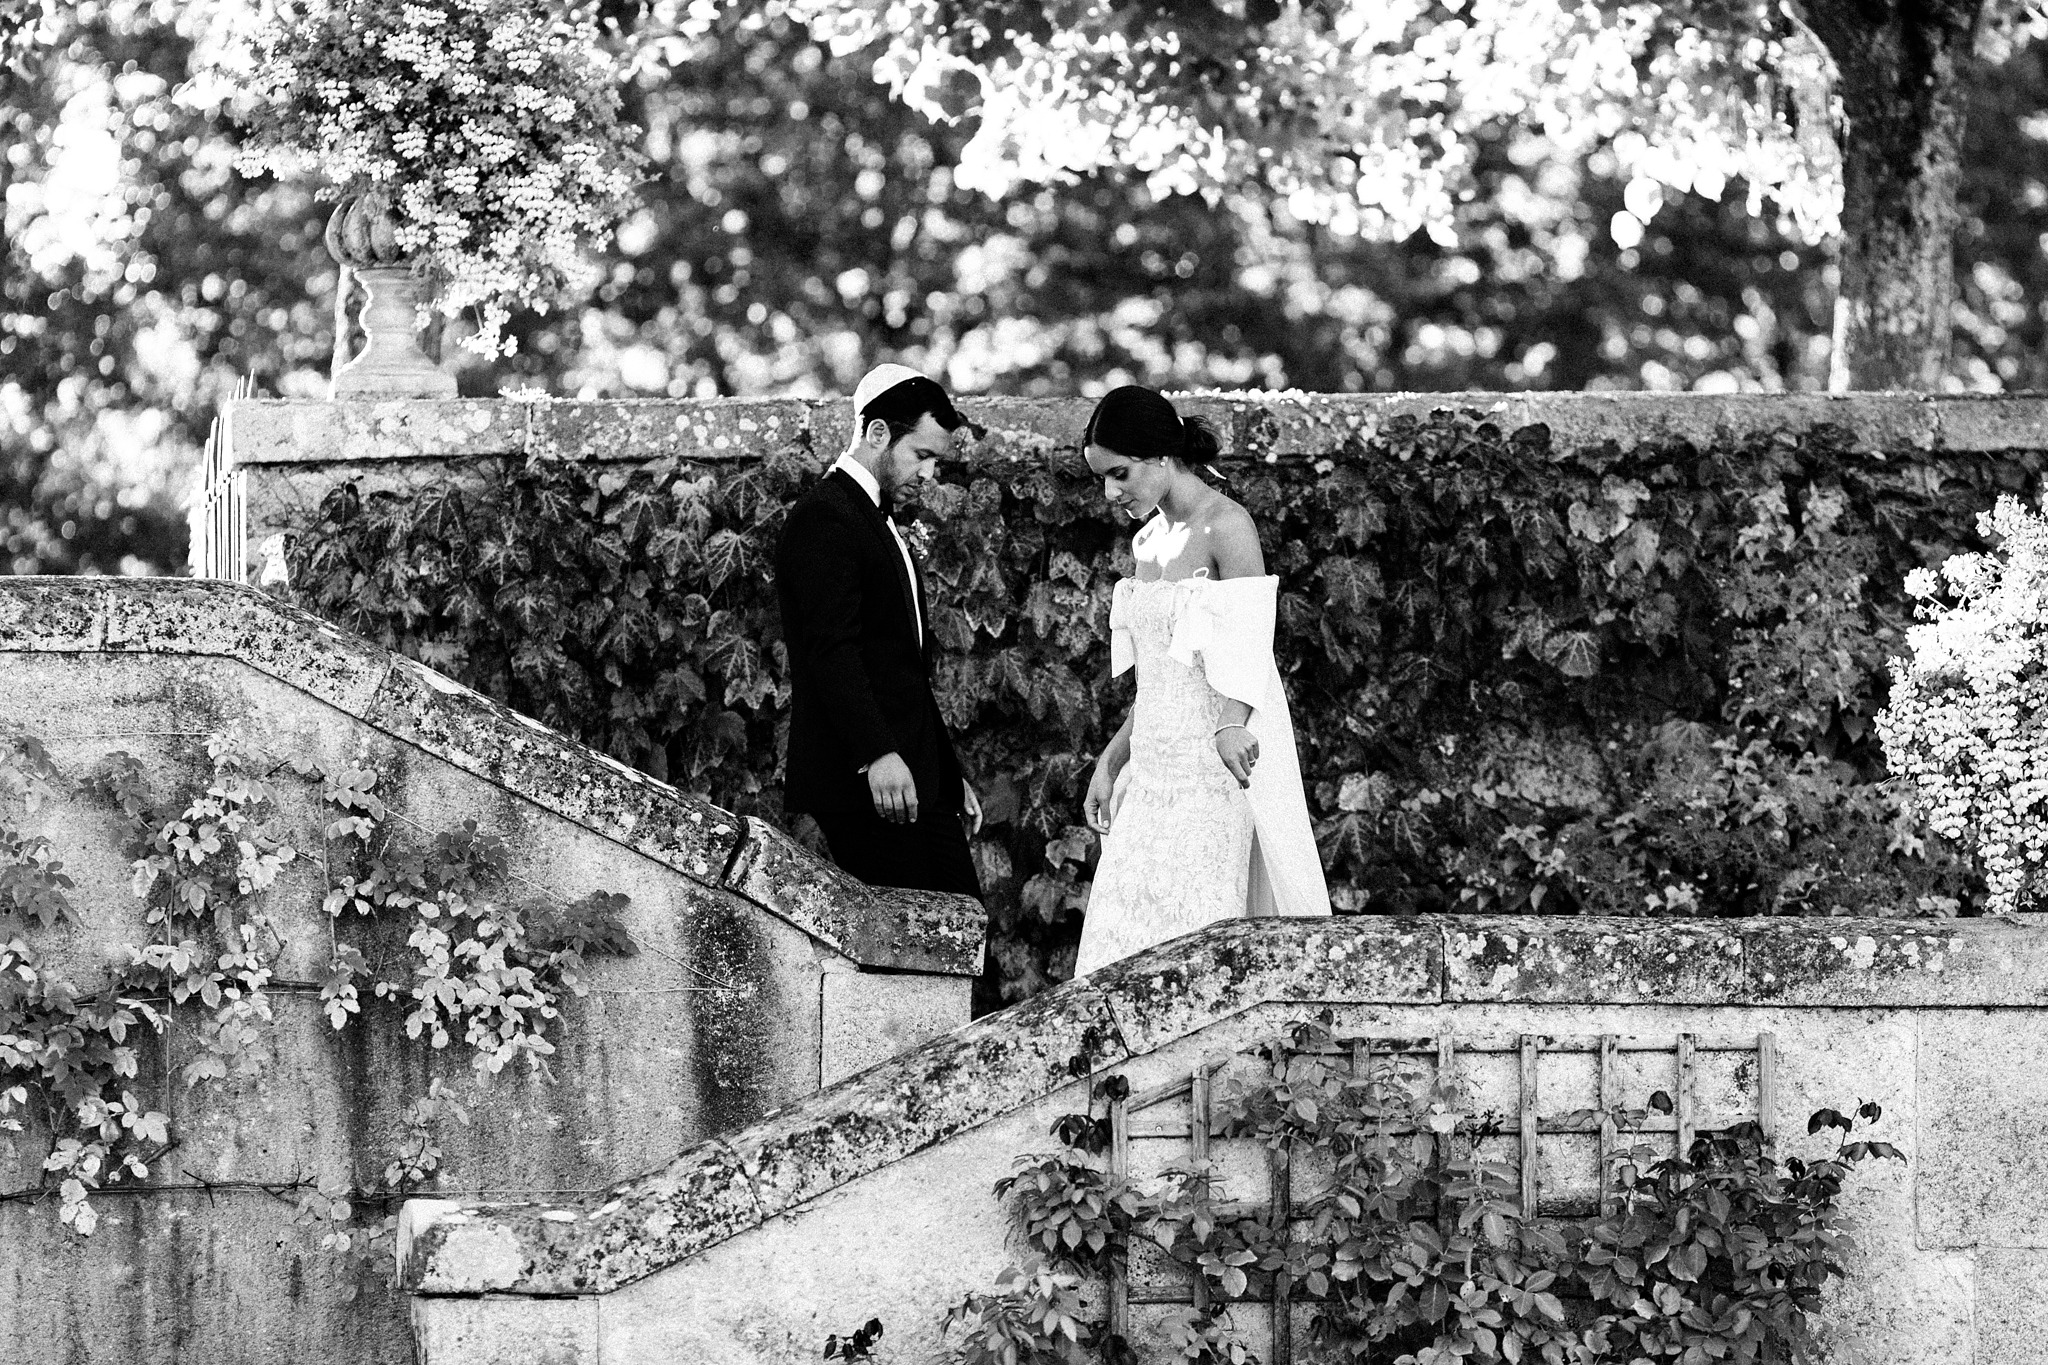 chateau-wedding-france-chanel-eric-as-seen-on-vogue-with-sarah-falugo-photographer_0114